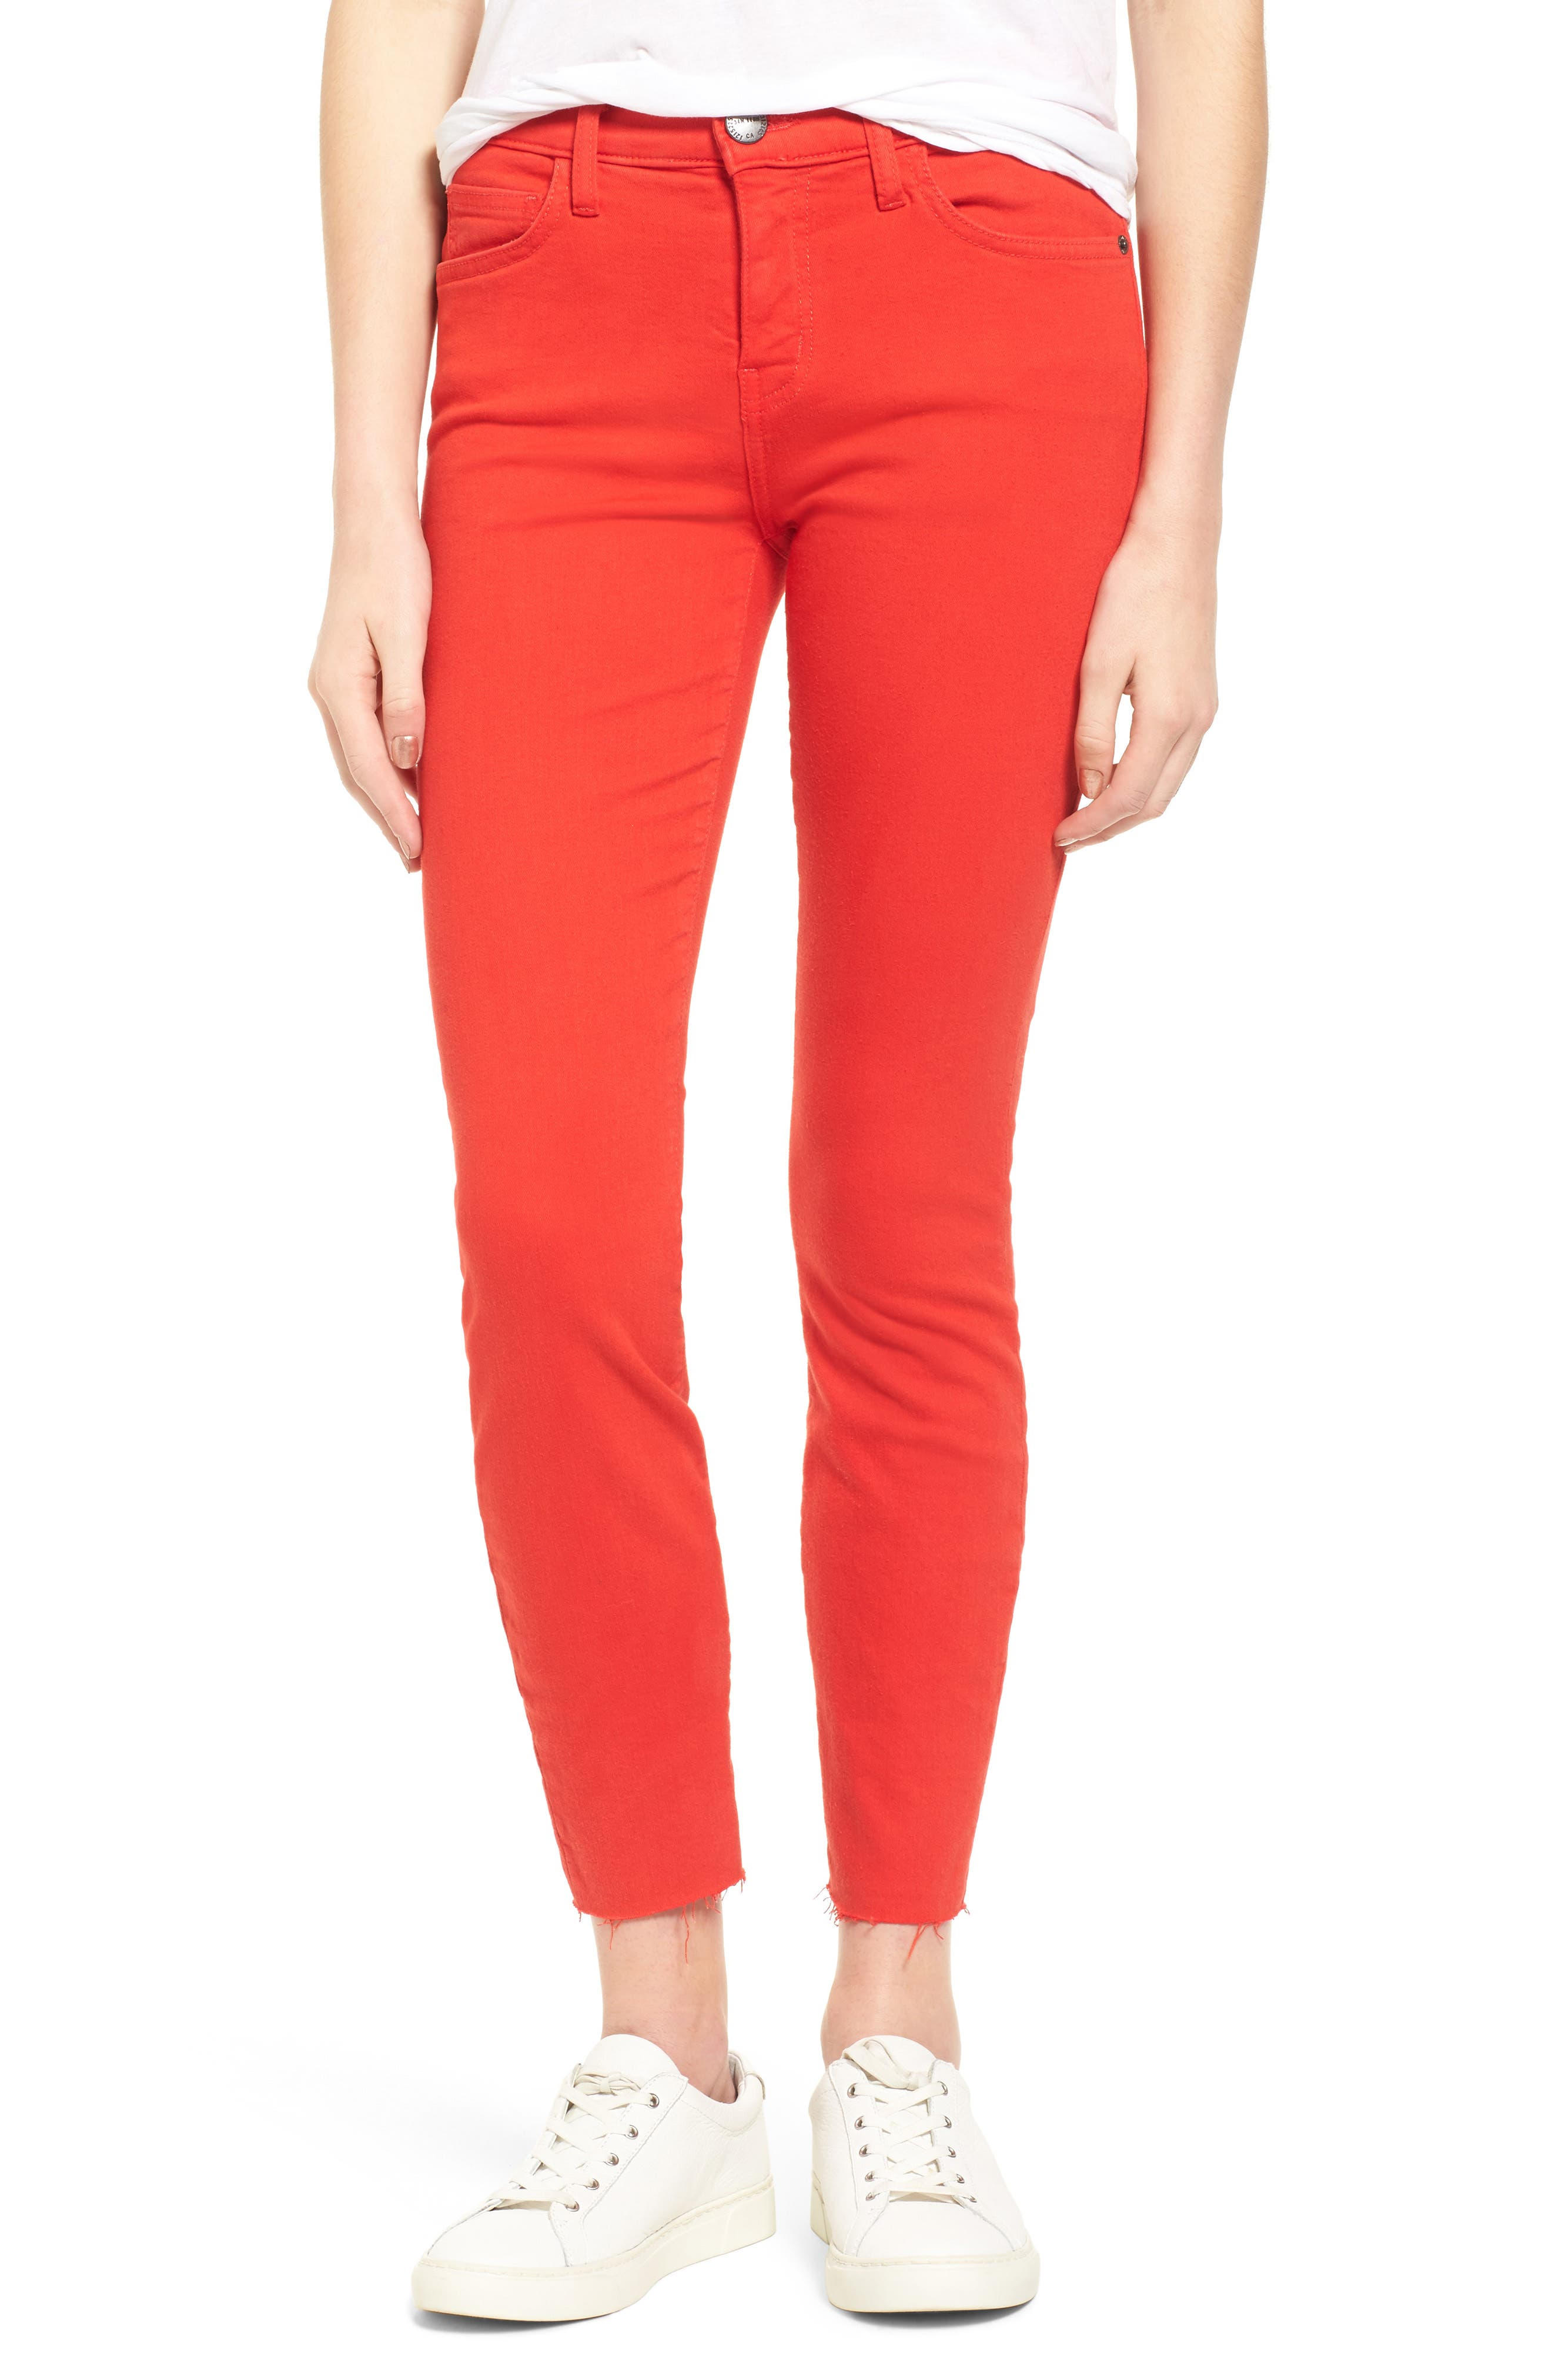 Main Image - Current/Elliott The Stiletto Crop Skinny Jeans (Racing Red)